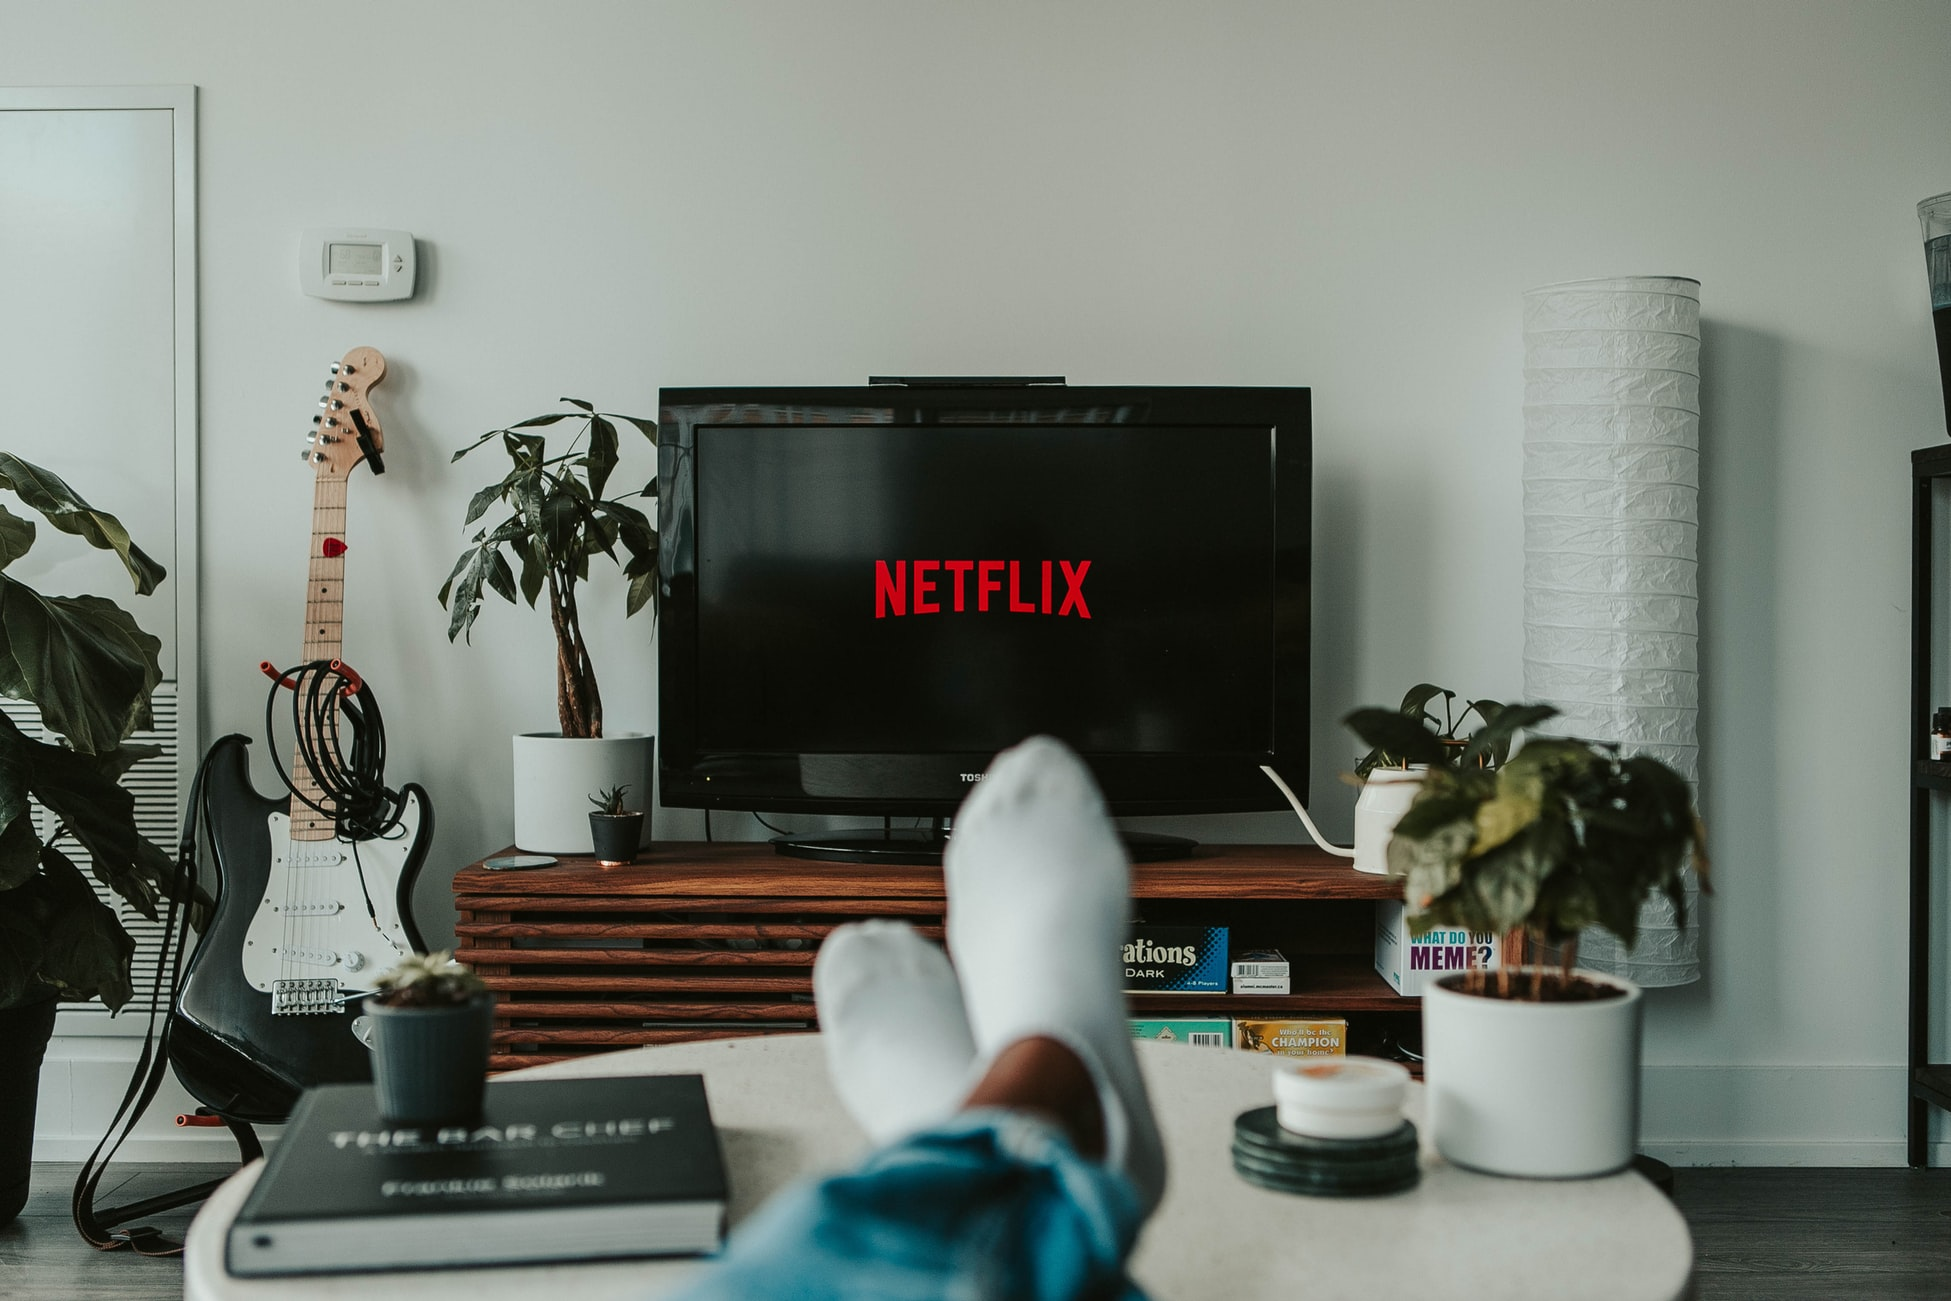 Top 10 Shows/Movies to Watch When Procrastinating Study